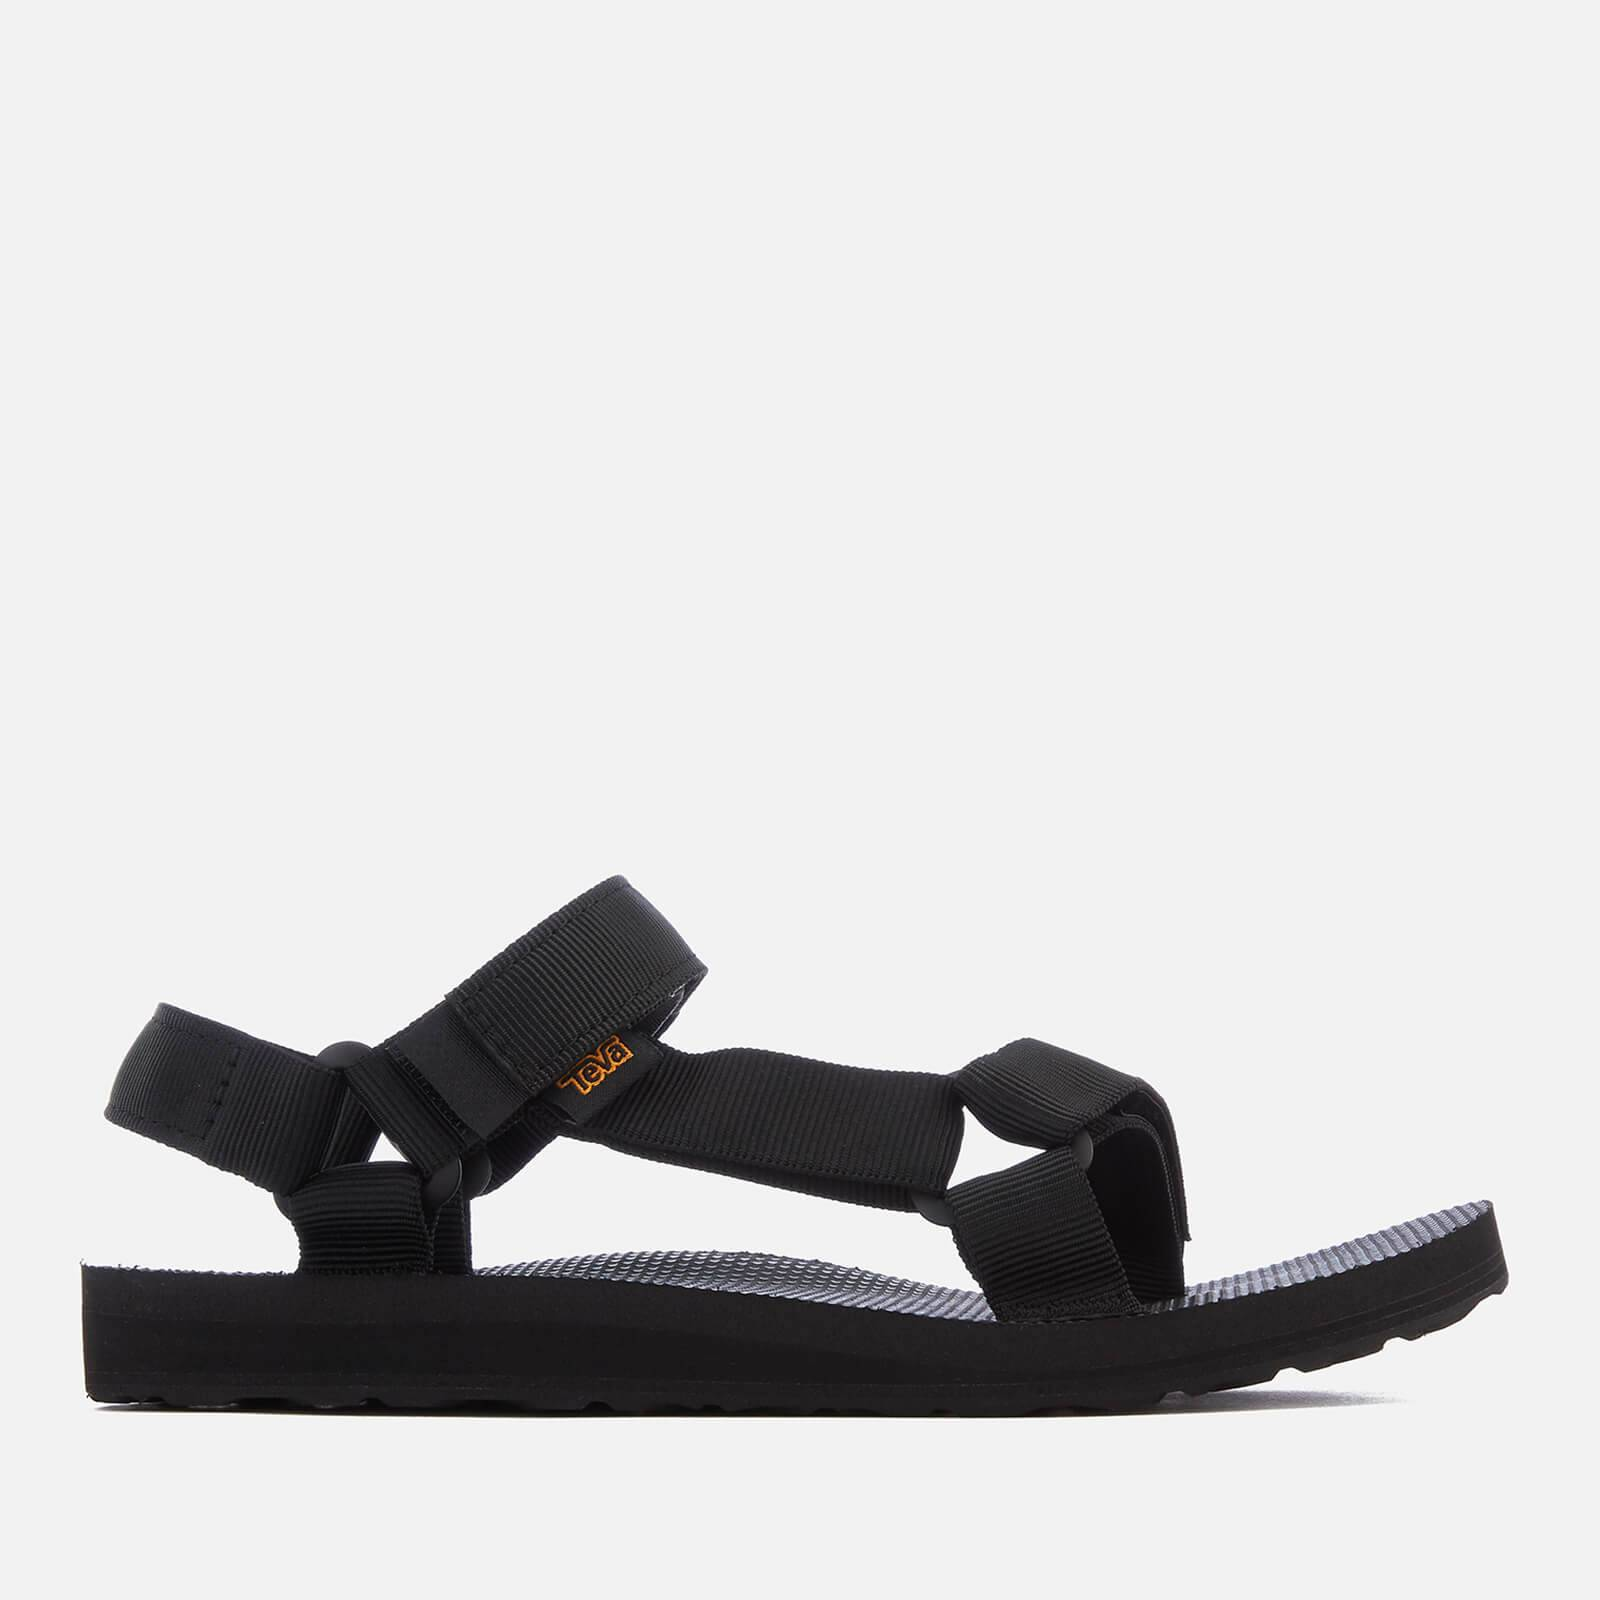 Teva Women's Original Universal Sport Sandals - Black - UK 3